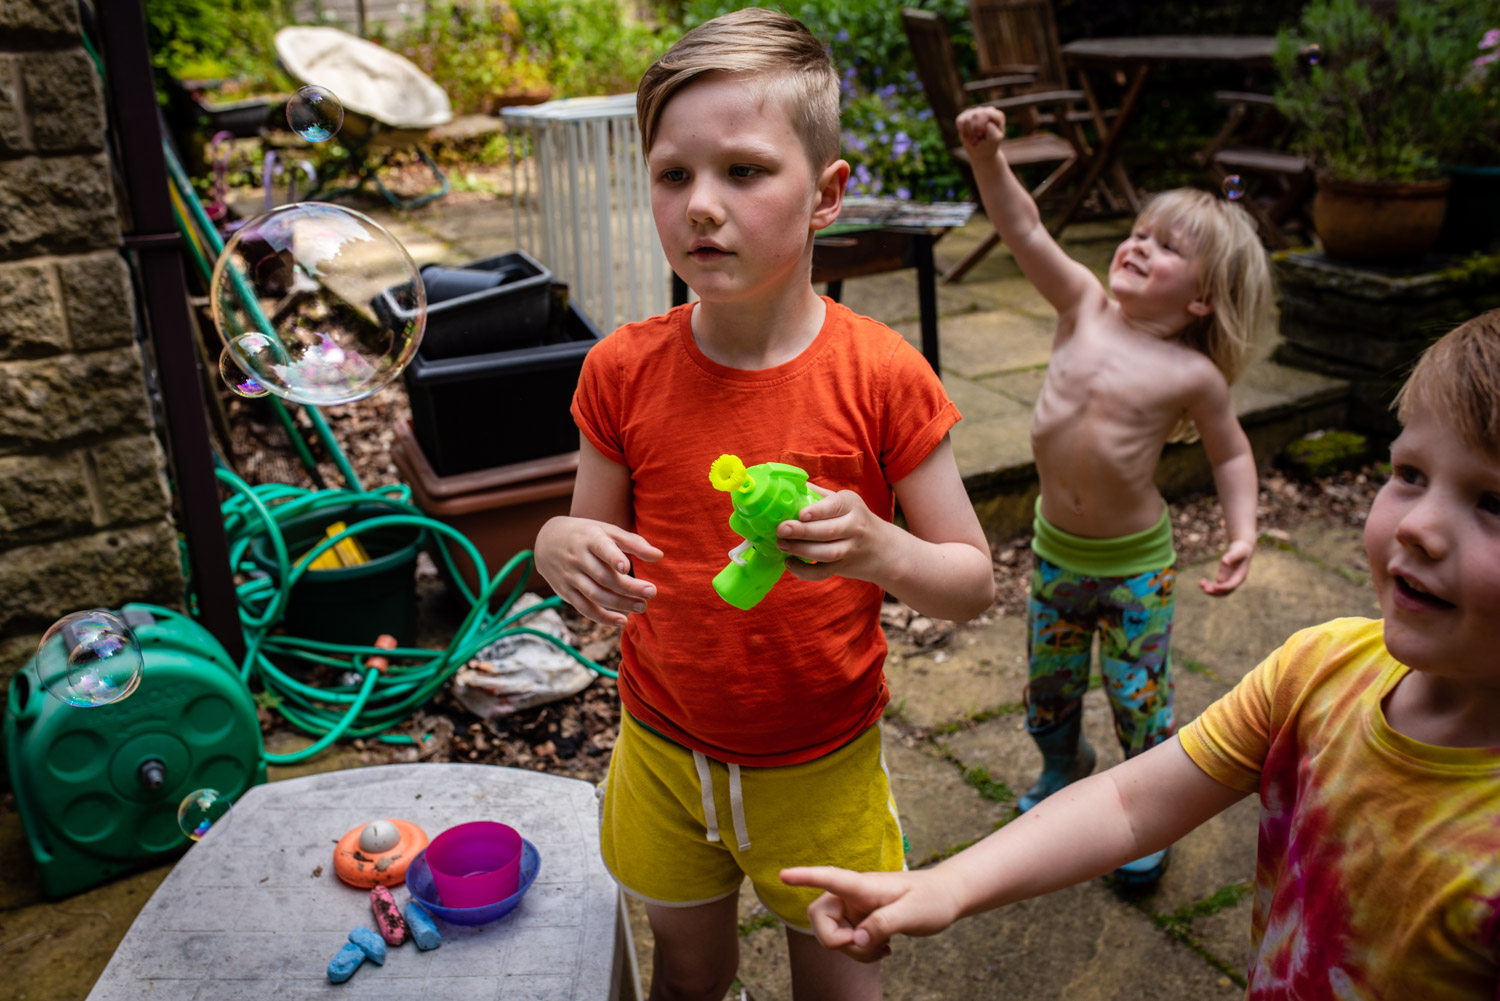 Three young brothers stand in their garden blowing and catching bubbles during this unposed family photo shoot  in Manchester, UK.